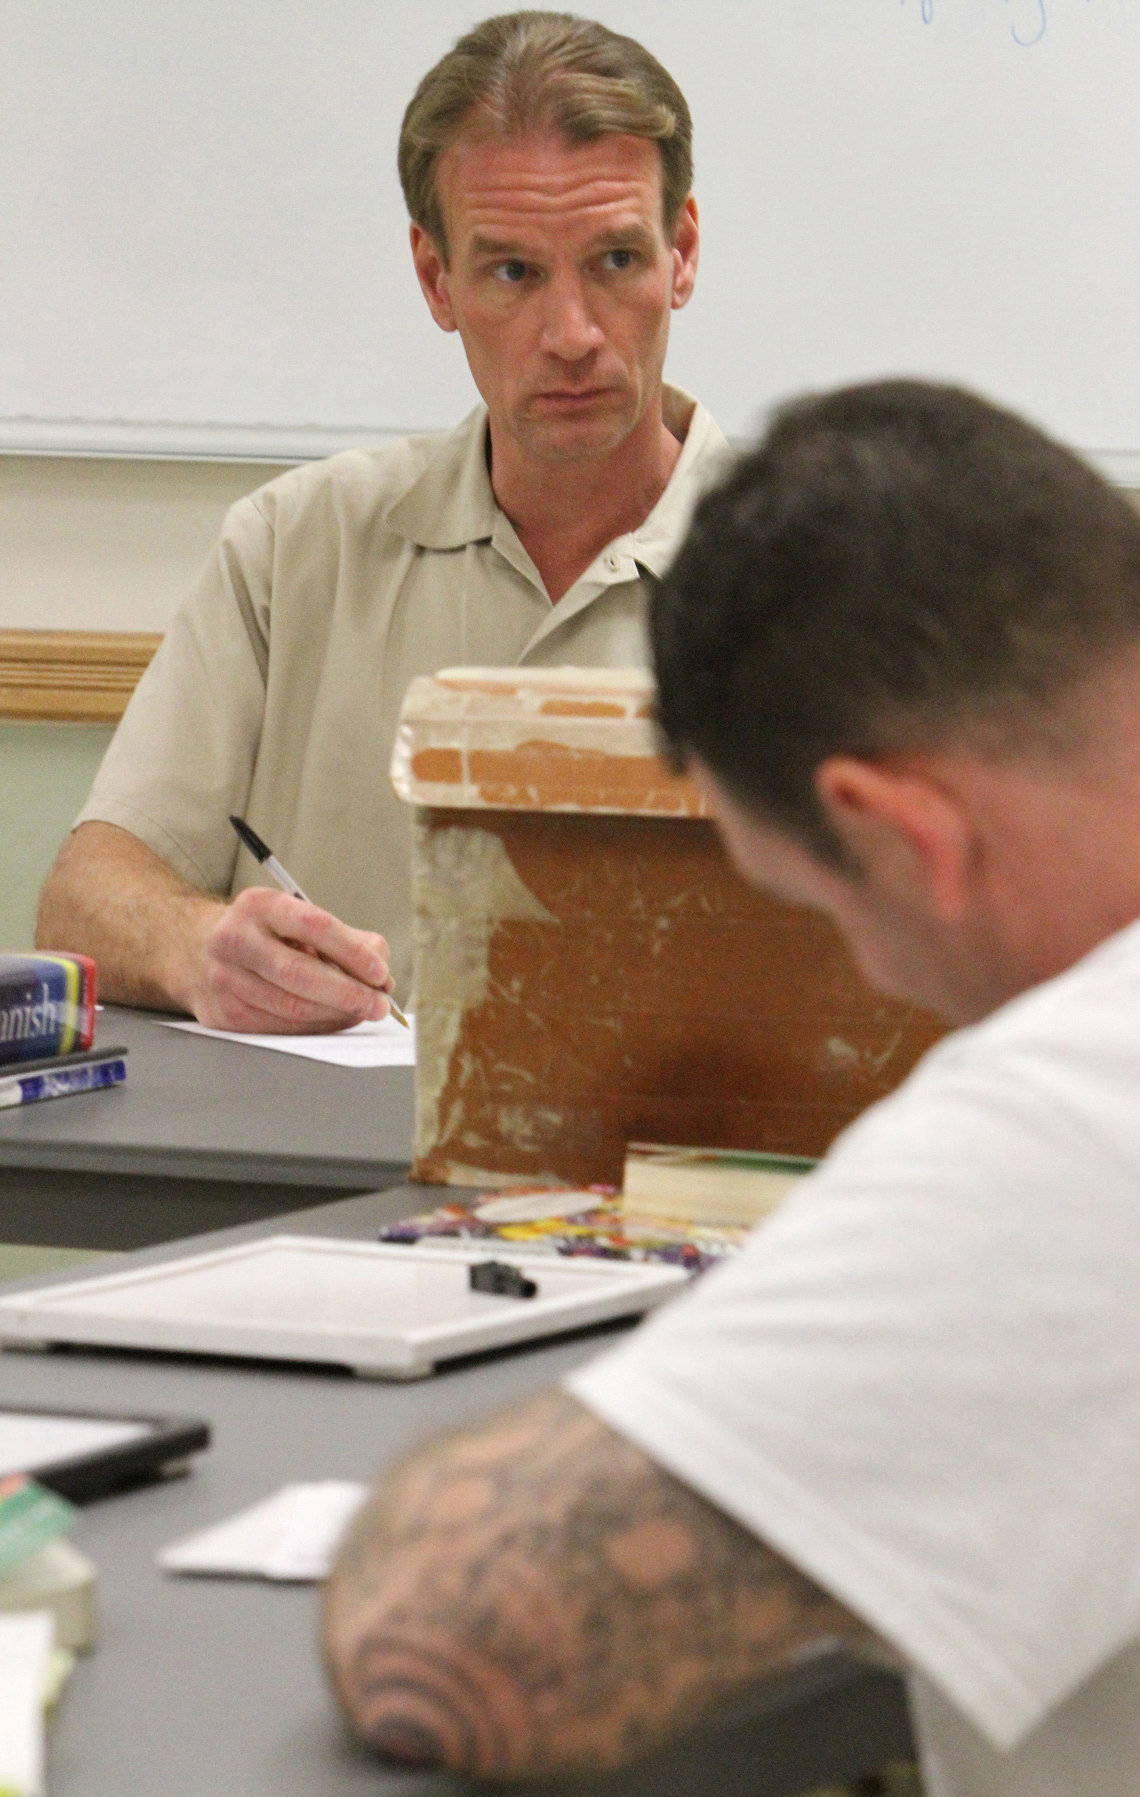 Arthur Longworth led a Spanish class for other inmates in the Monroe Correctional Complex library in Monroe, Wash.